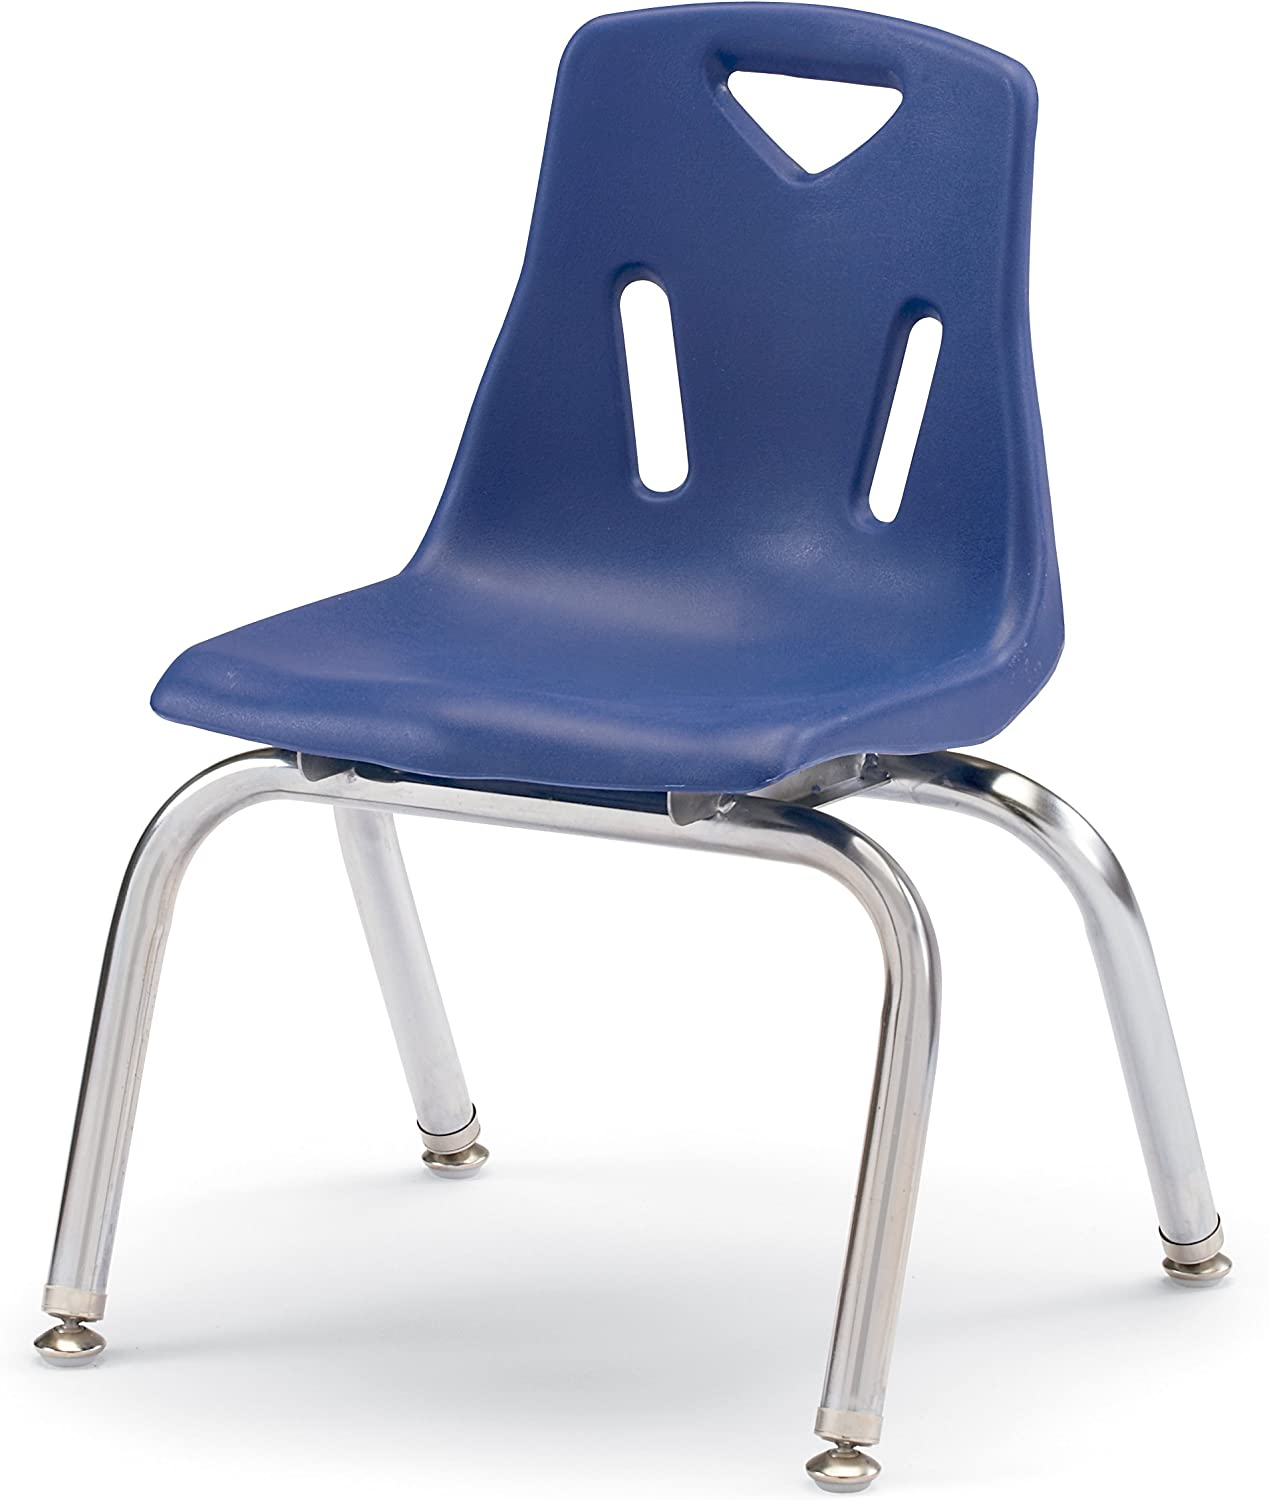 Berries 8142JC1003 Stacking Chair with Chrome-Plated Legs, 12  Height, bluee